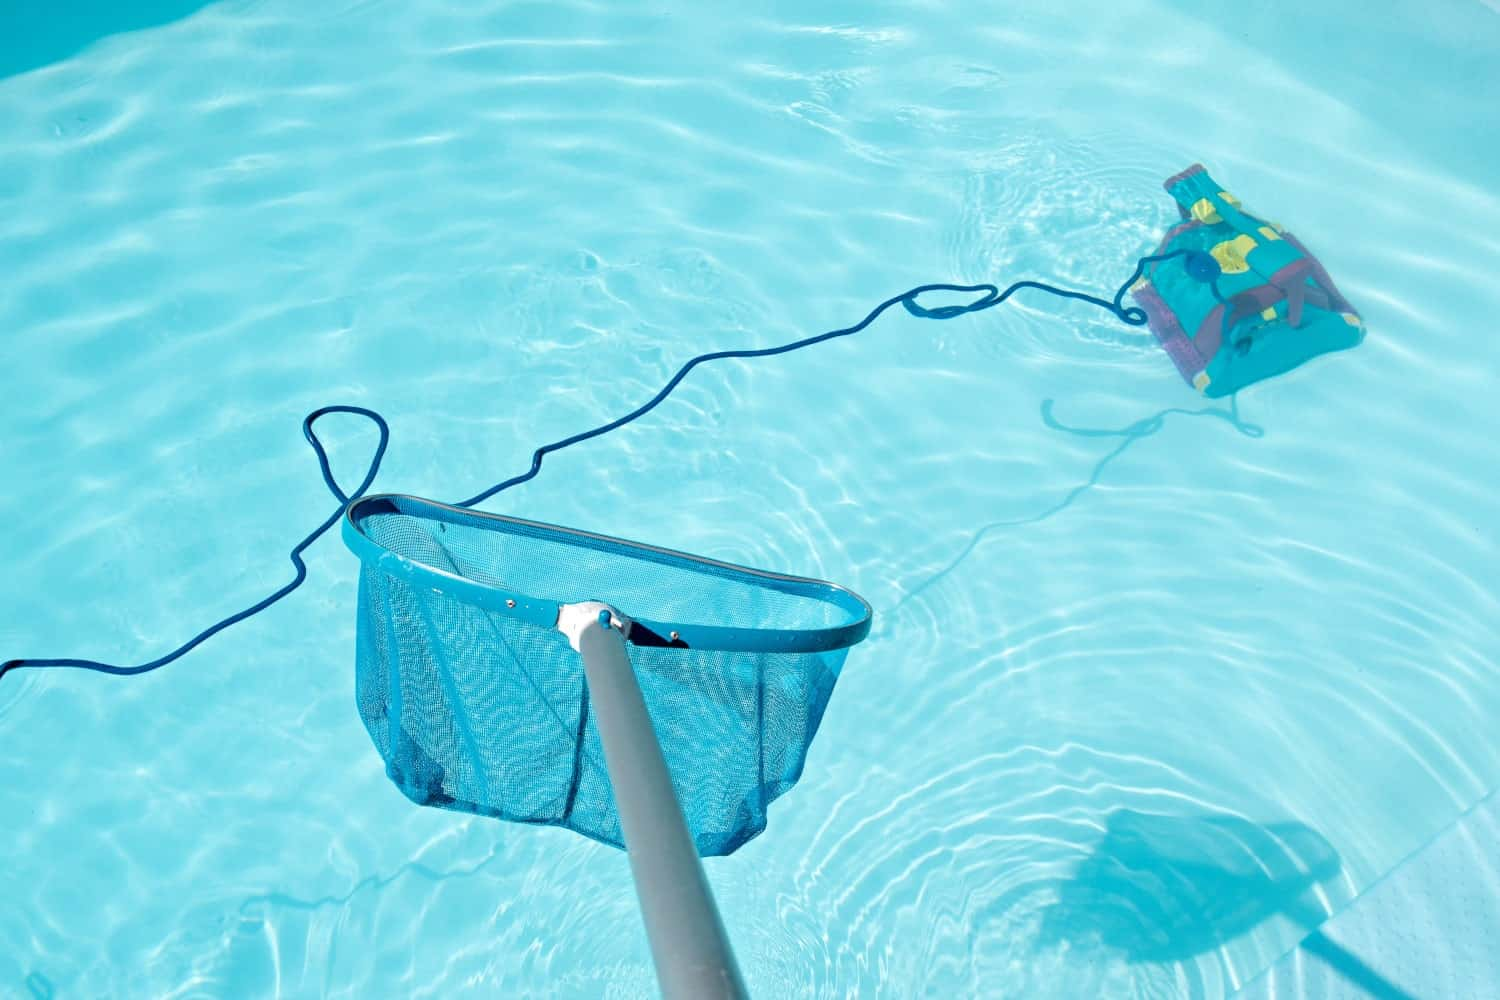 A net above water and a pressure pool cleaner at the bottom of a pool.